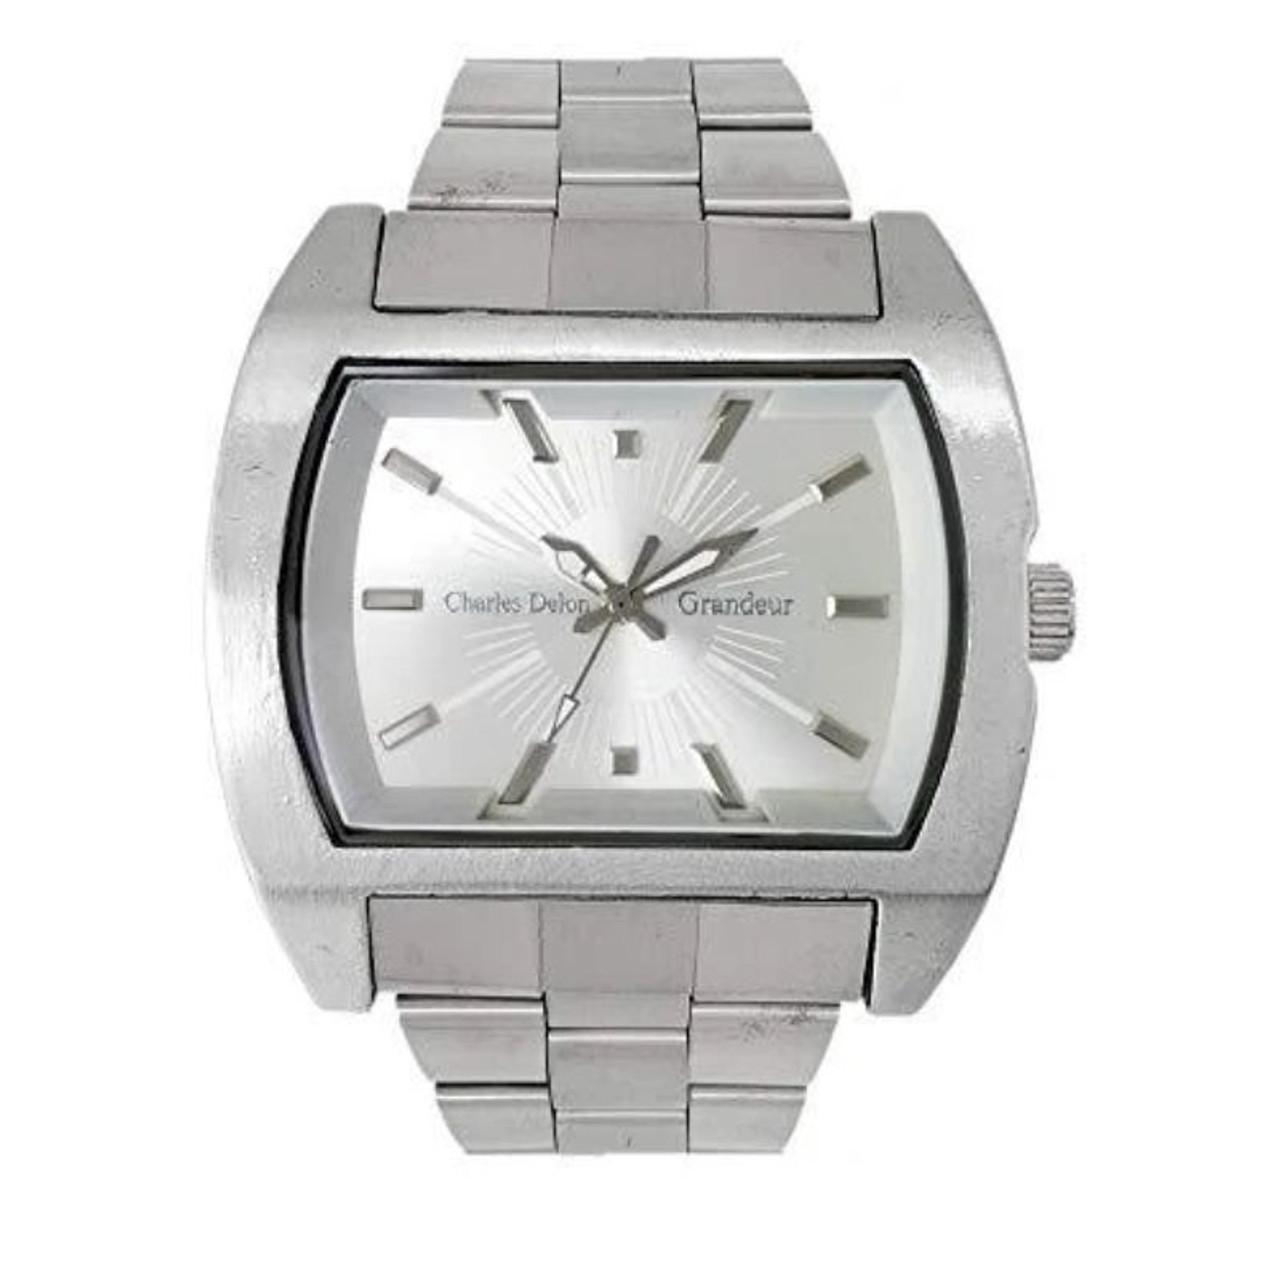 Charles Delon Men's Watches 5152 GPSS Silver Stainless Steel Quartz